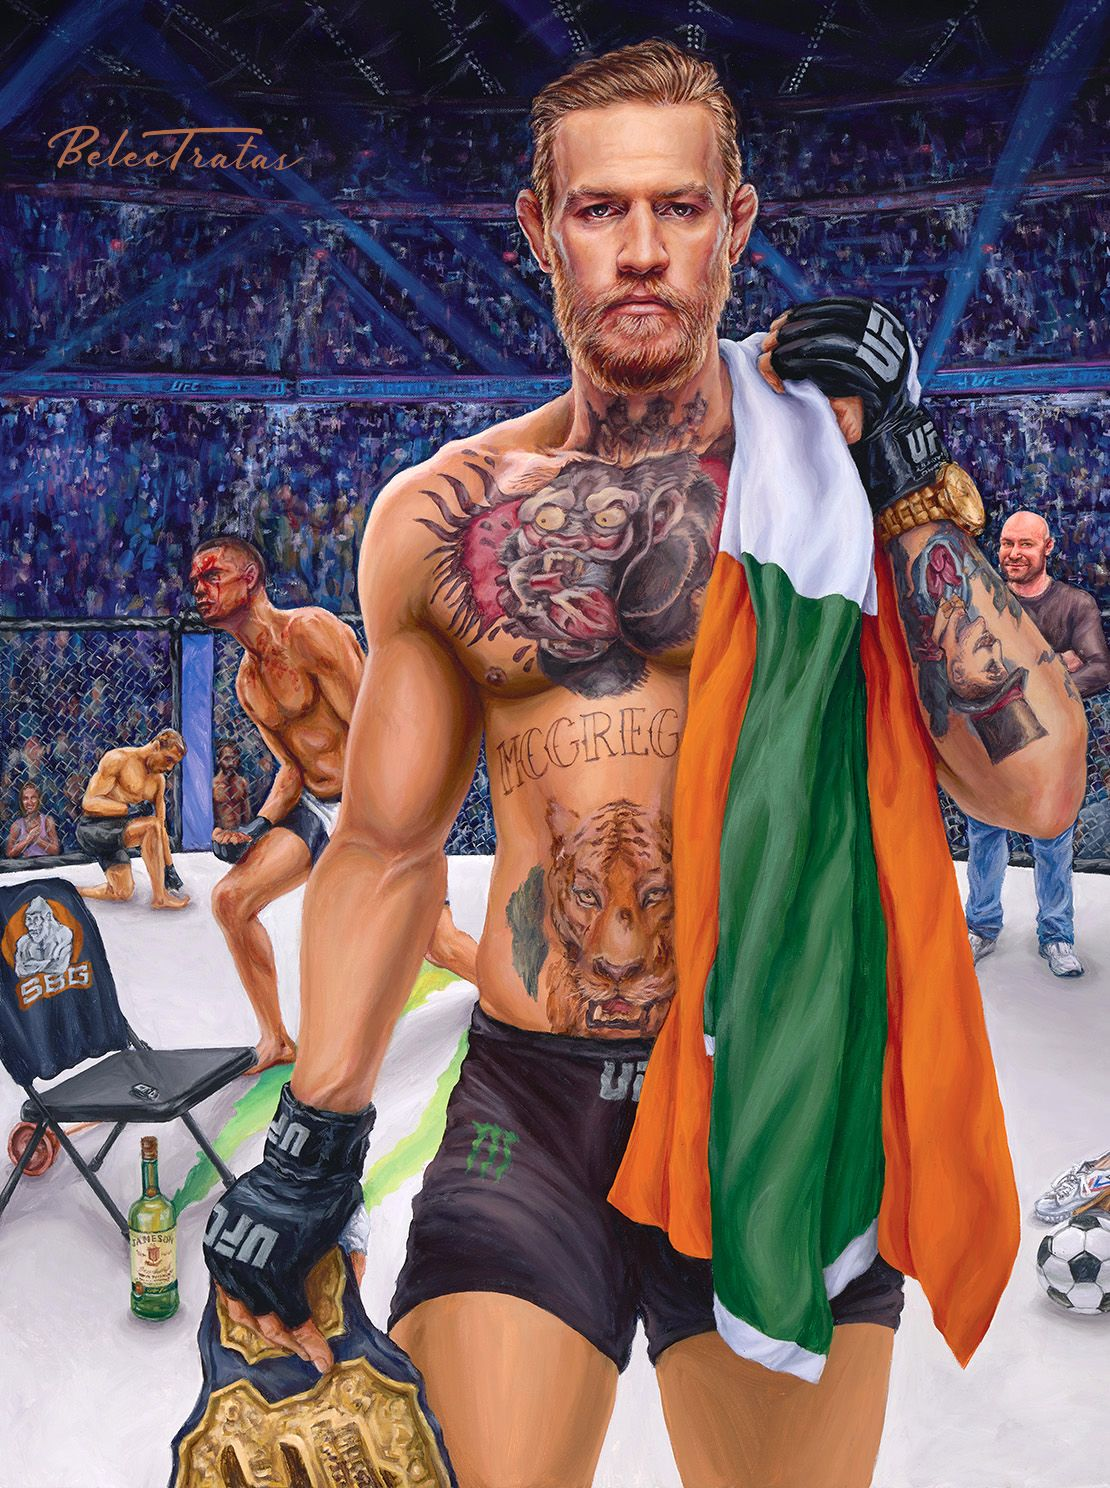 Painting Of Ufc Fighter Conor Mcgregor Conor Mcgregor Mcgregor Wallpapers Mcgregor